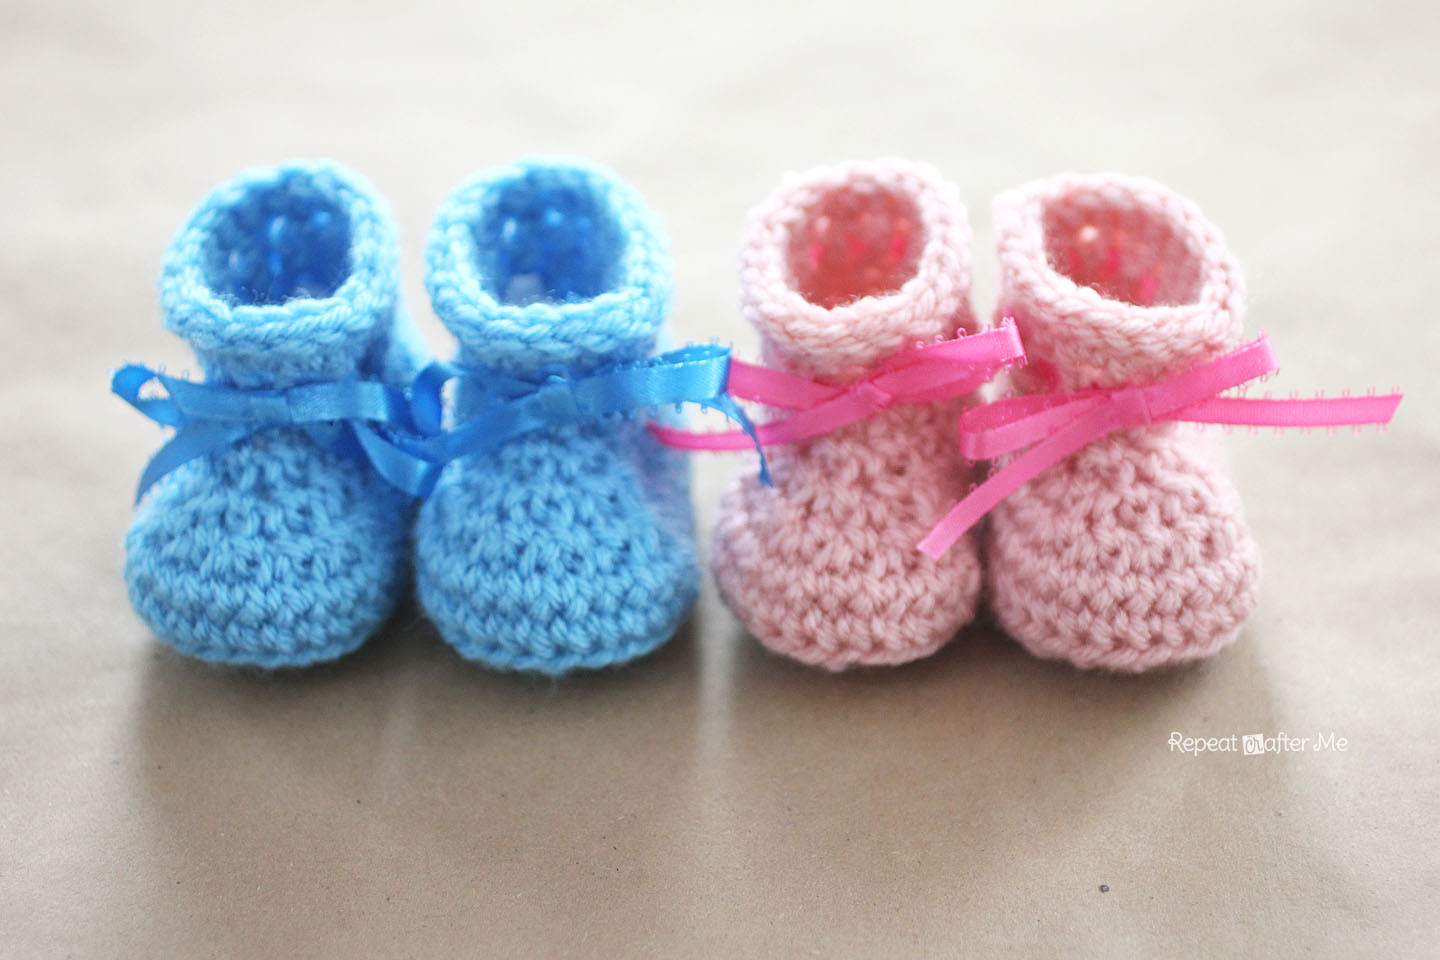 Baby Booties Crochet Pattern Fresh Crochet Newborn Baby Booties Pattern Repeat Crafter Me Of Top 49 Pictures Baby Booties Crochet Pattern